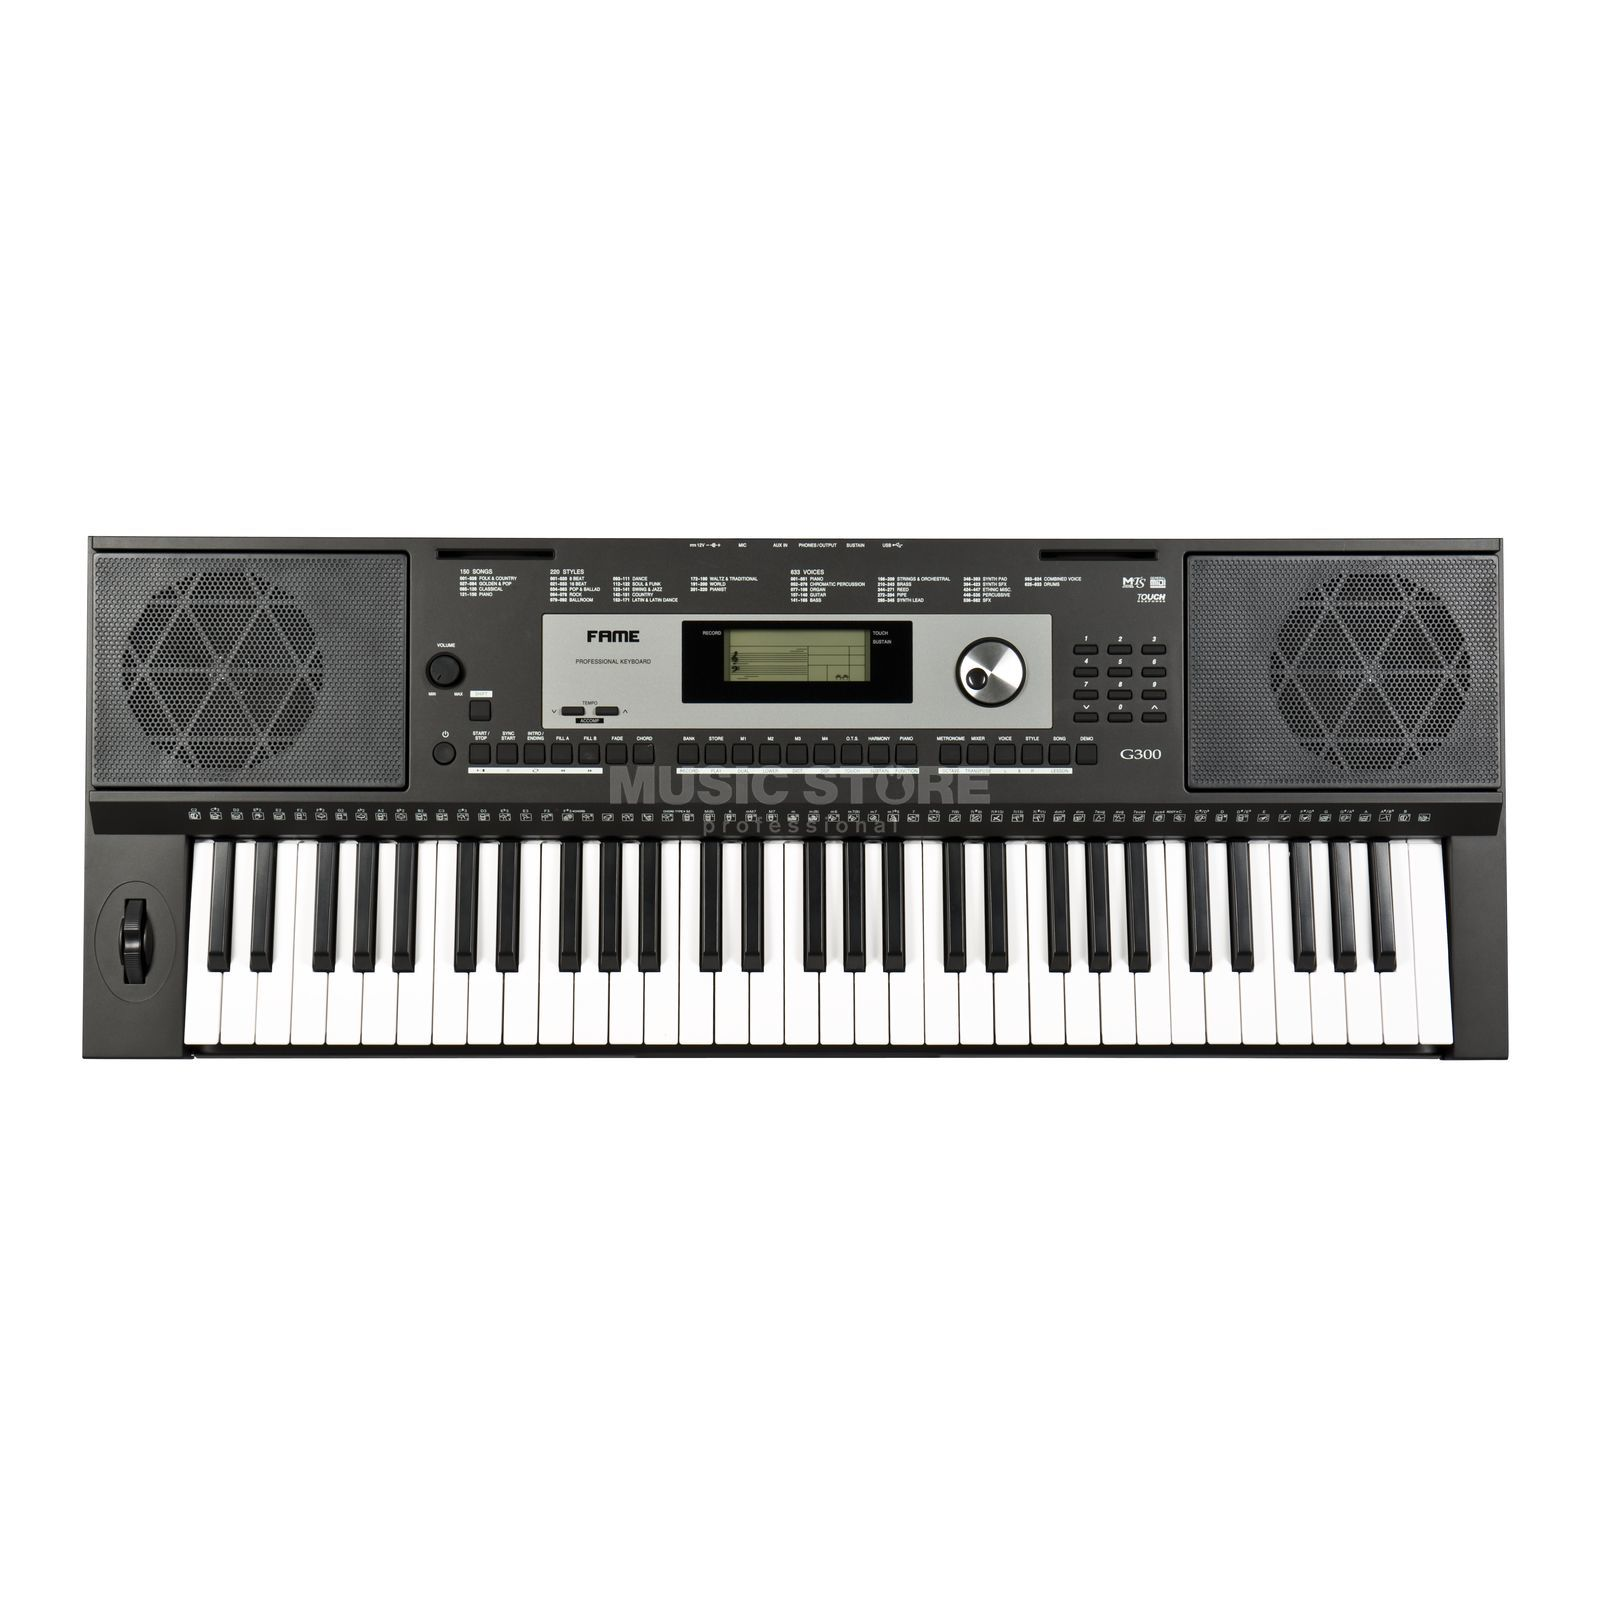 Fame G-300 Homekeyboard Product Image